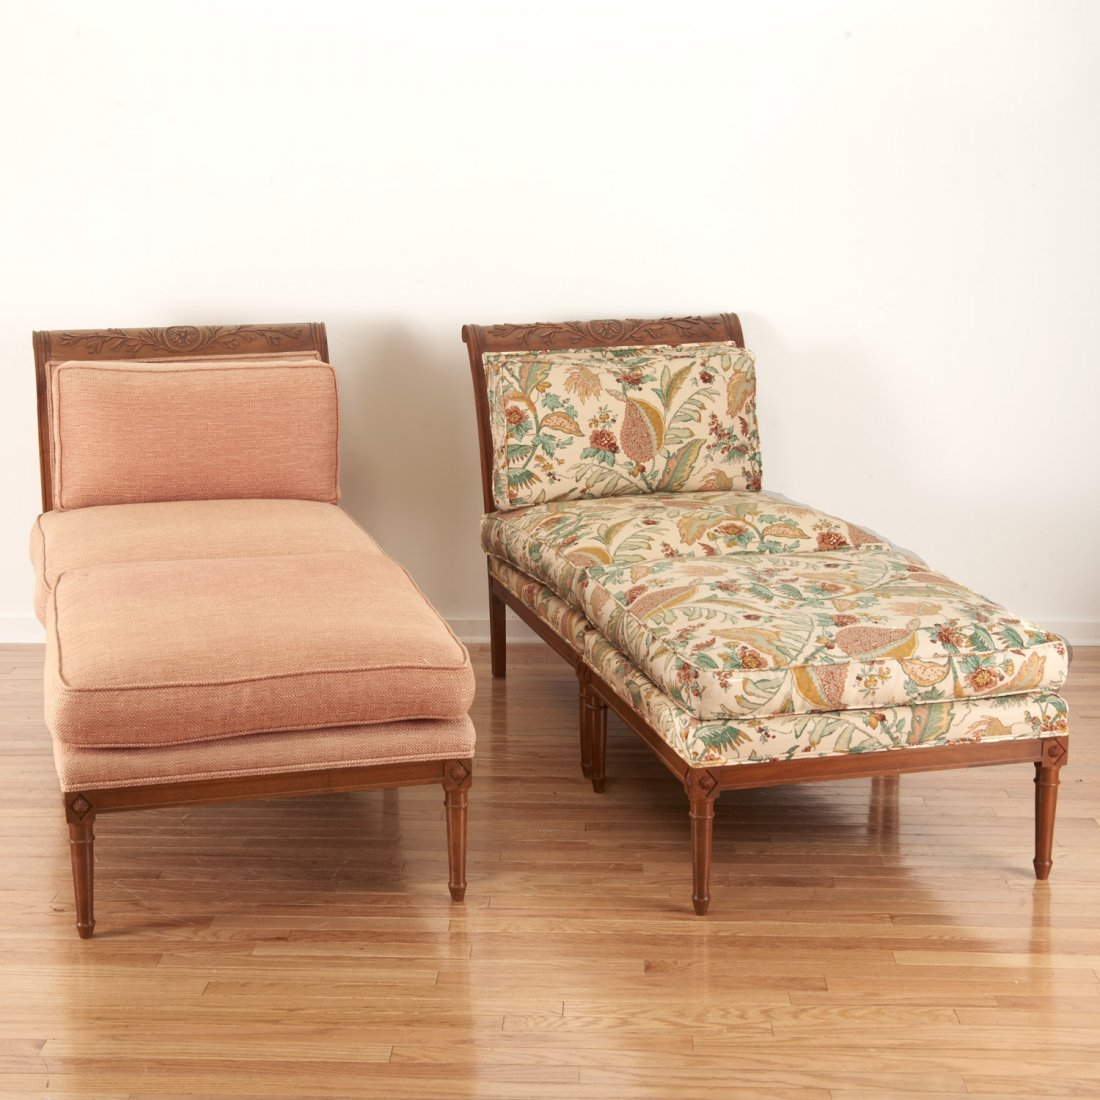 Pair Neo-Directoire upholstered walnut chauffeuse